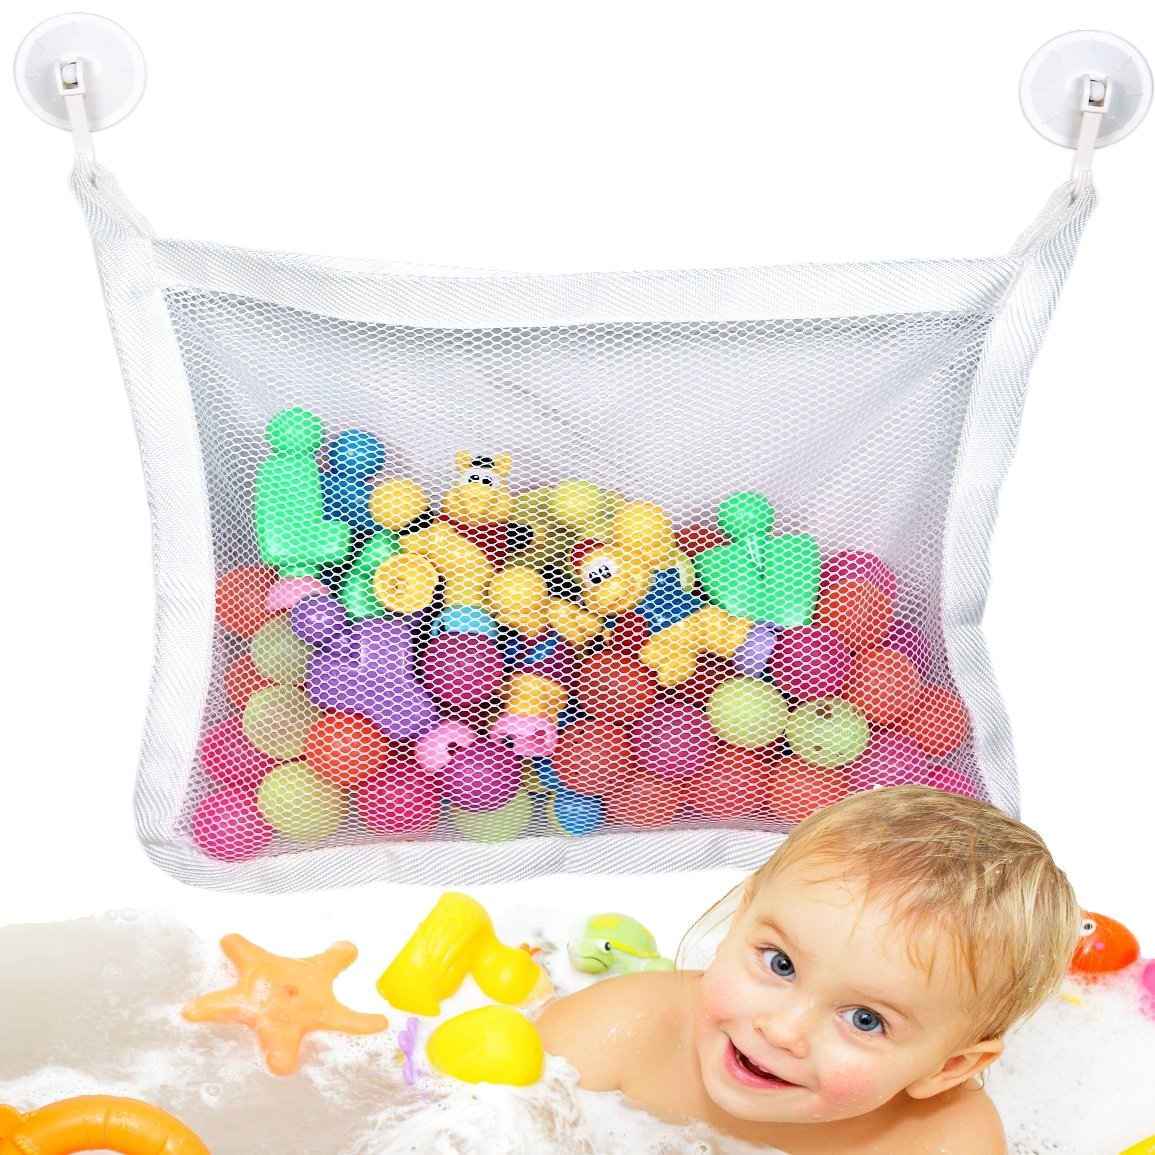 large baby bath toy organizer holder hanging storage bag bathroom children bath ebay. Black Bedroom Furniture Sets. Home Design Ideas